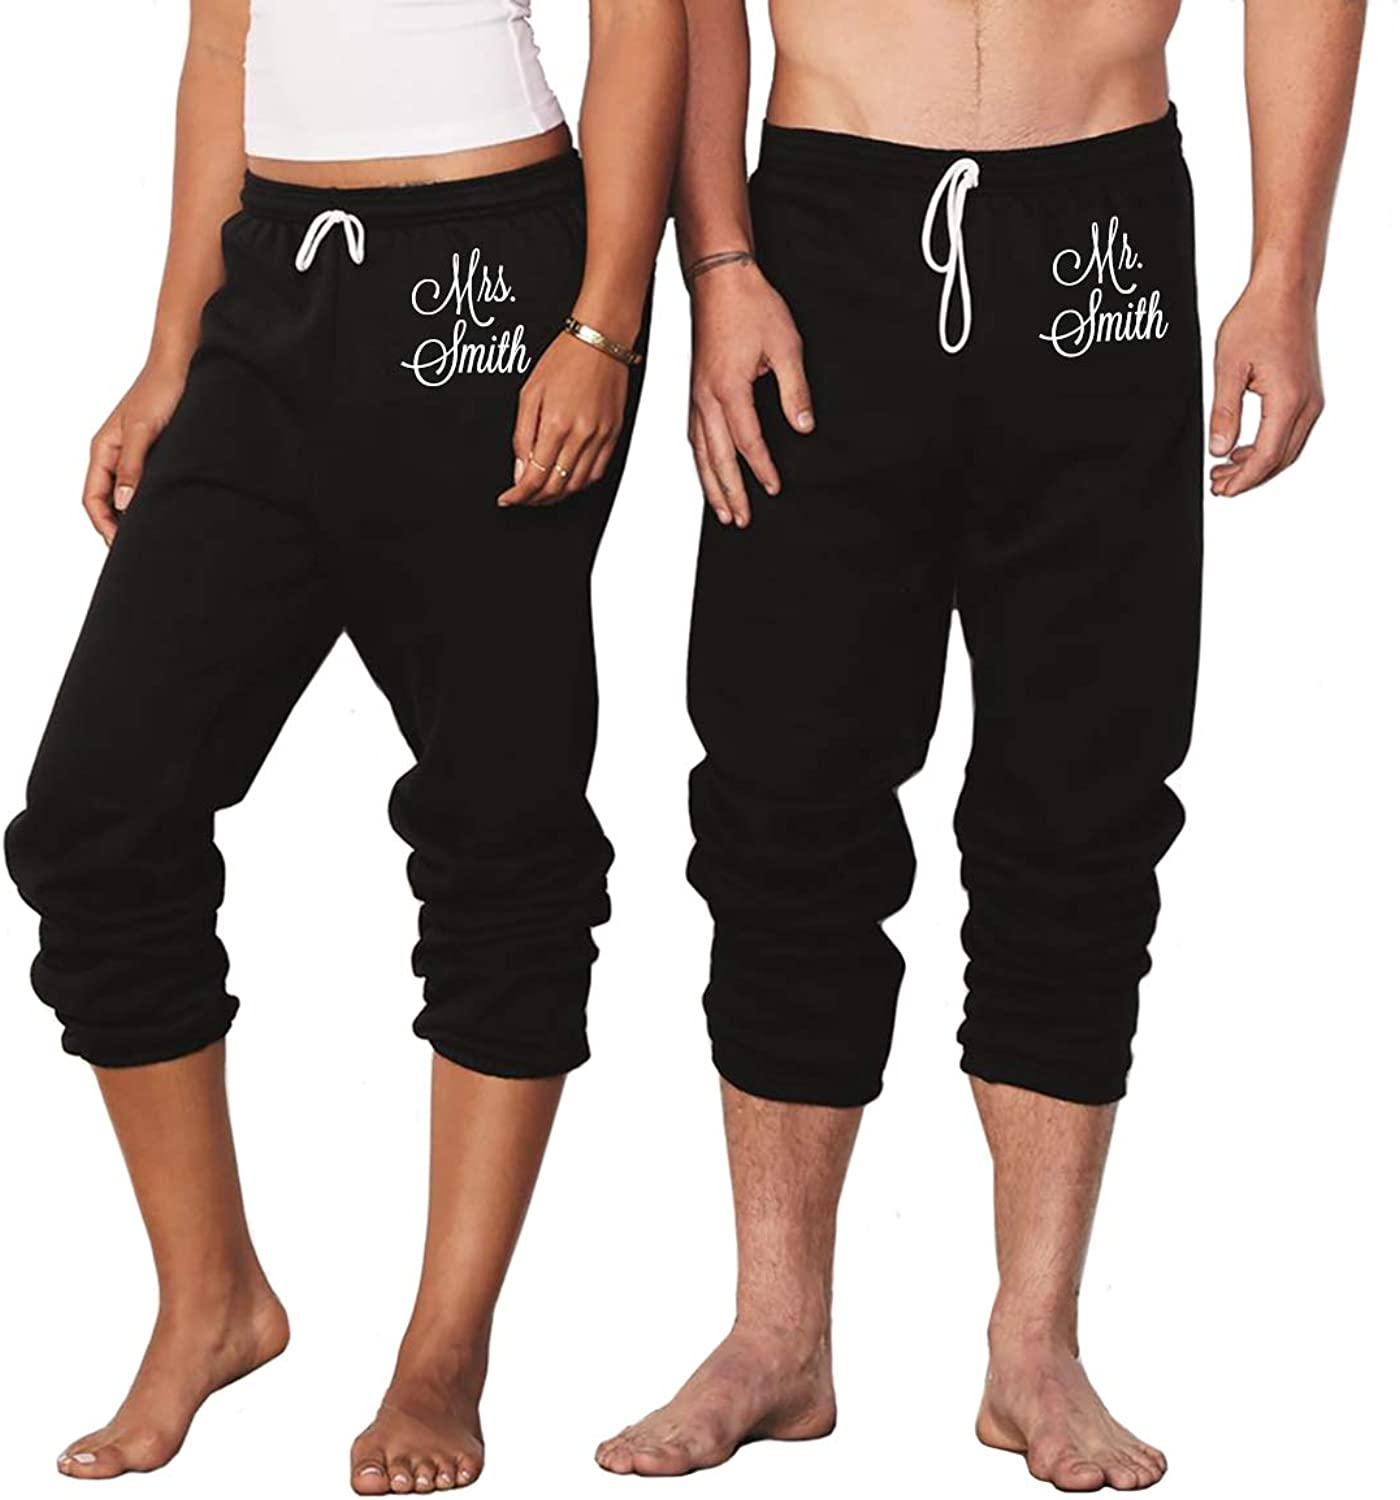 Classy Bride Personalized Mr. and Mrs. Sweatpants